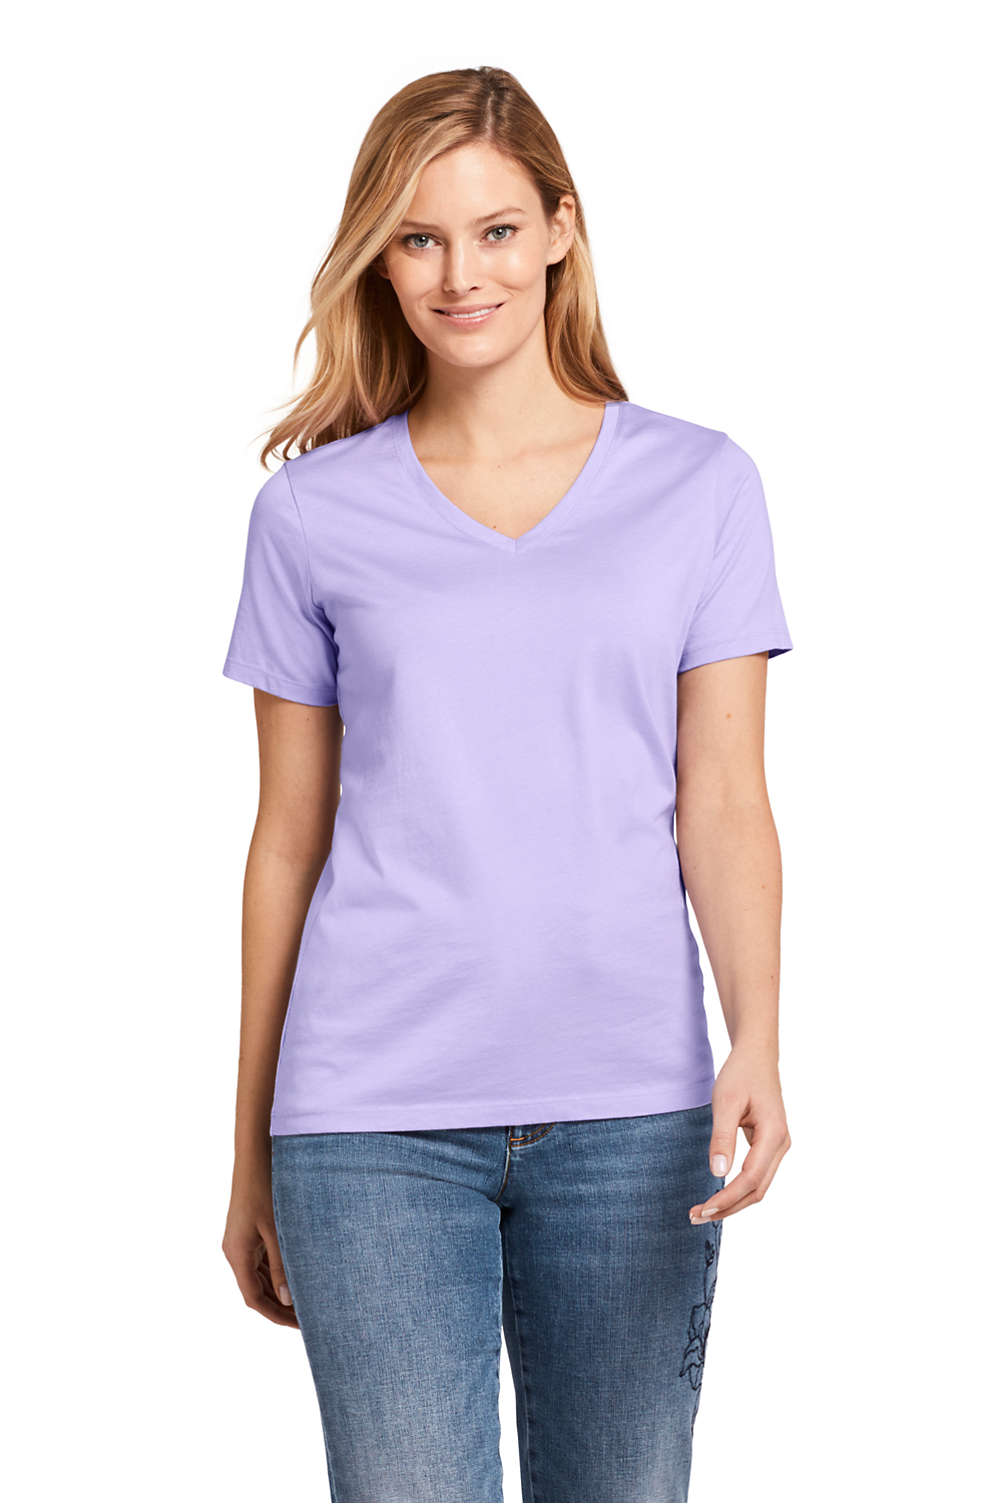 Women s Supima Cotton Short Sleeve T-shirt - Relaxed V-neck from ... 6c62c05fdf